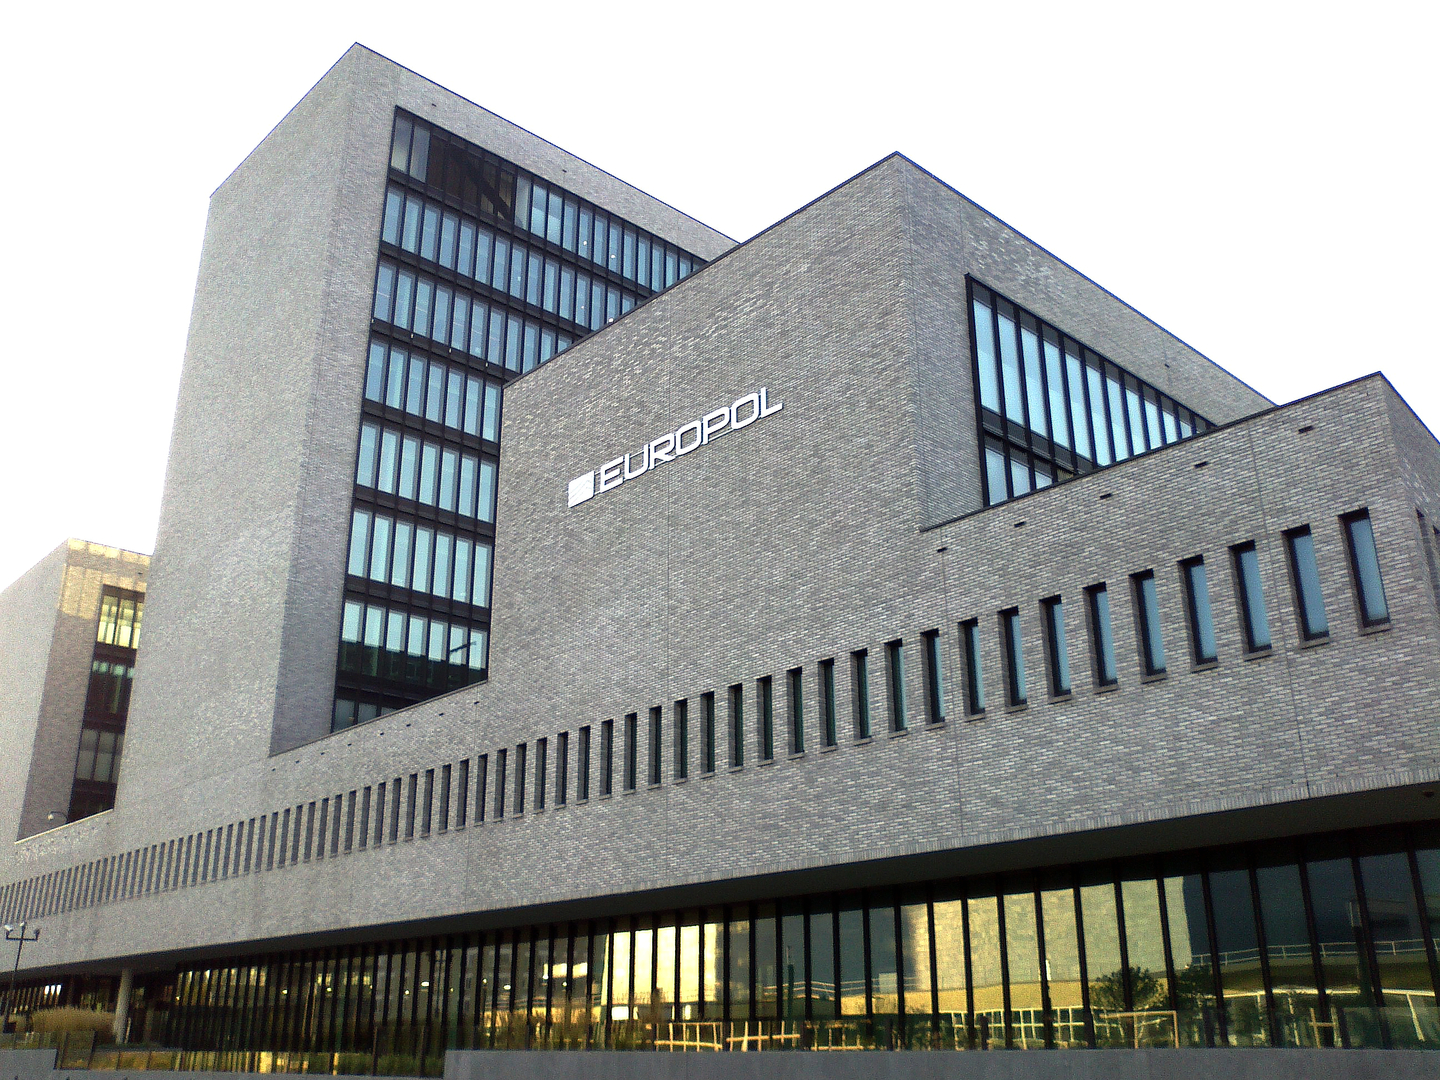 Europol building, The Hague, the Netherlands